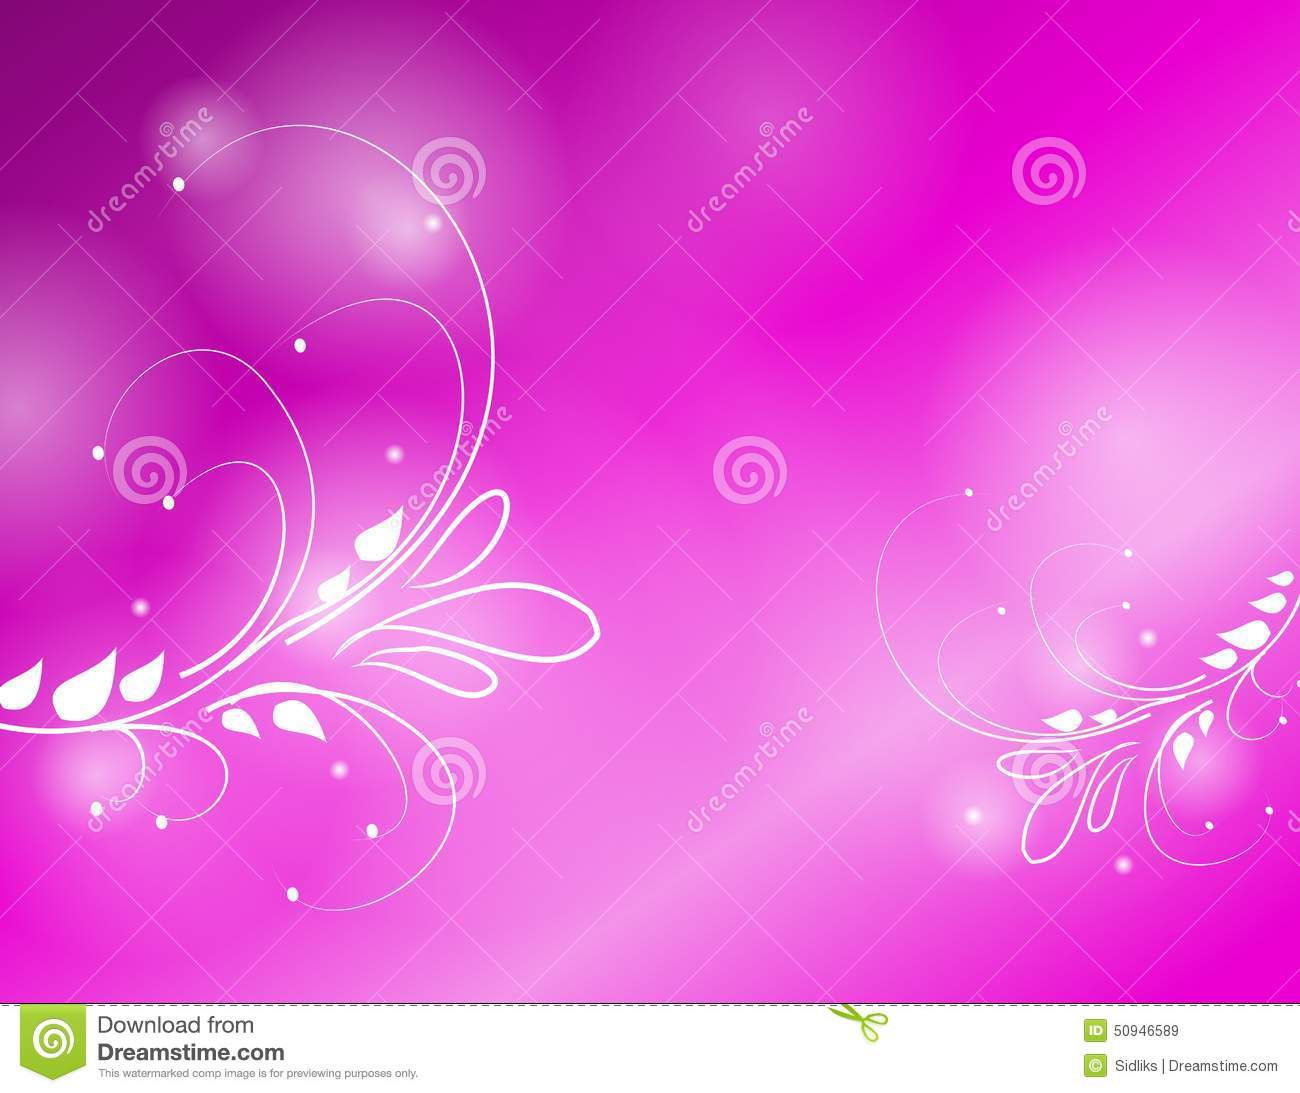 Light Pink Abstract Backgrounds